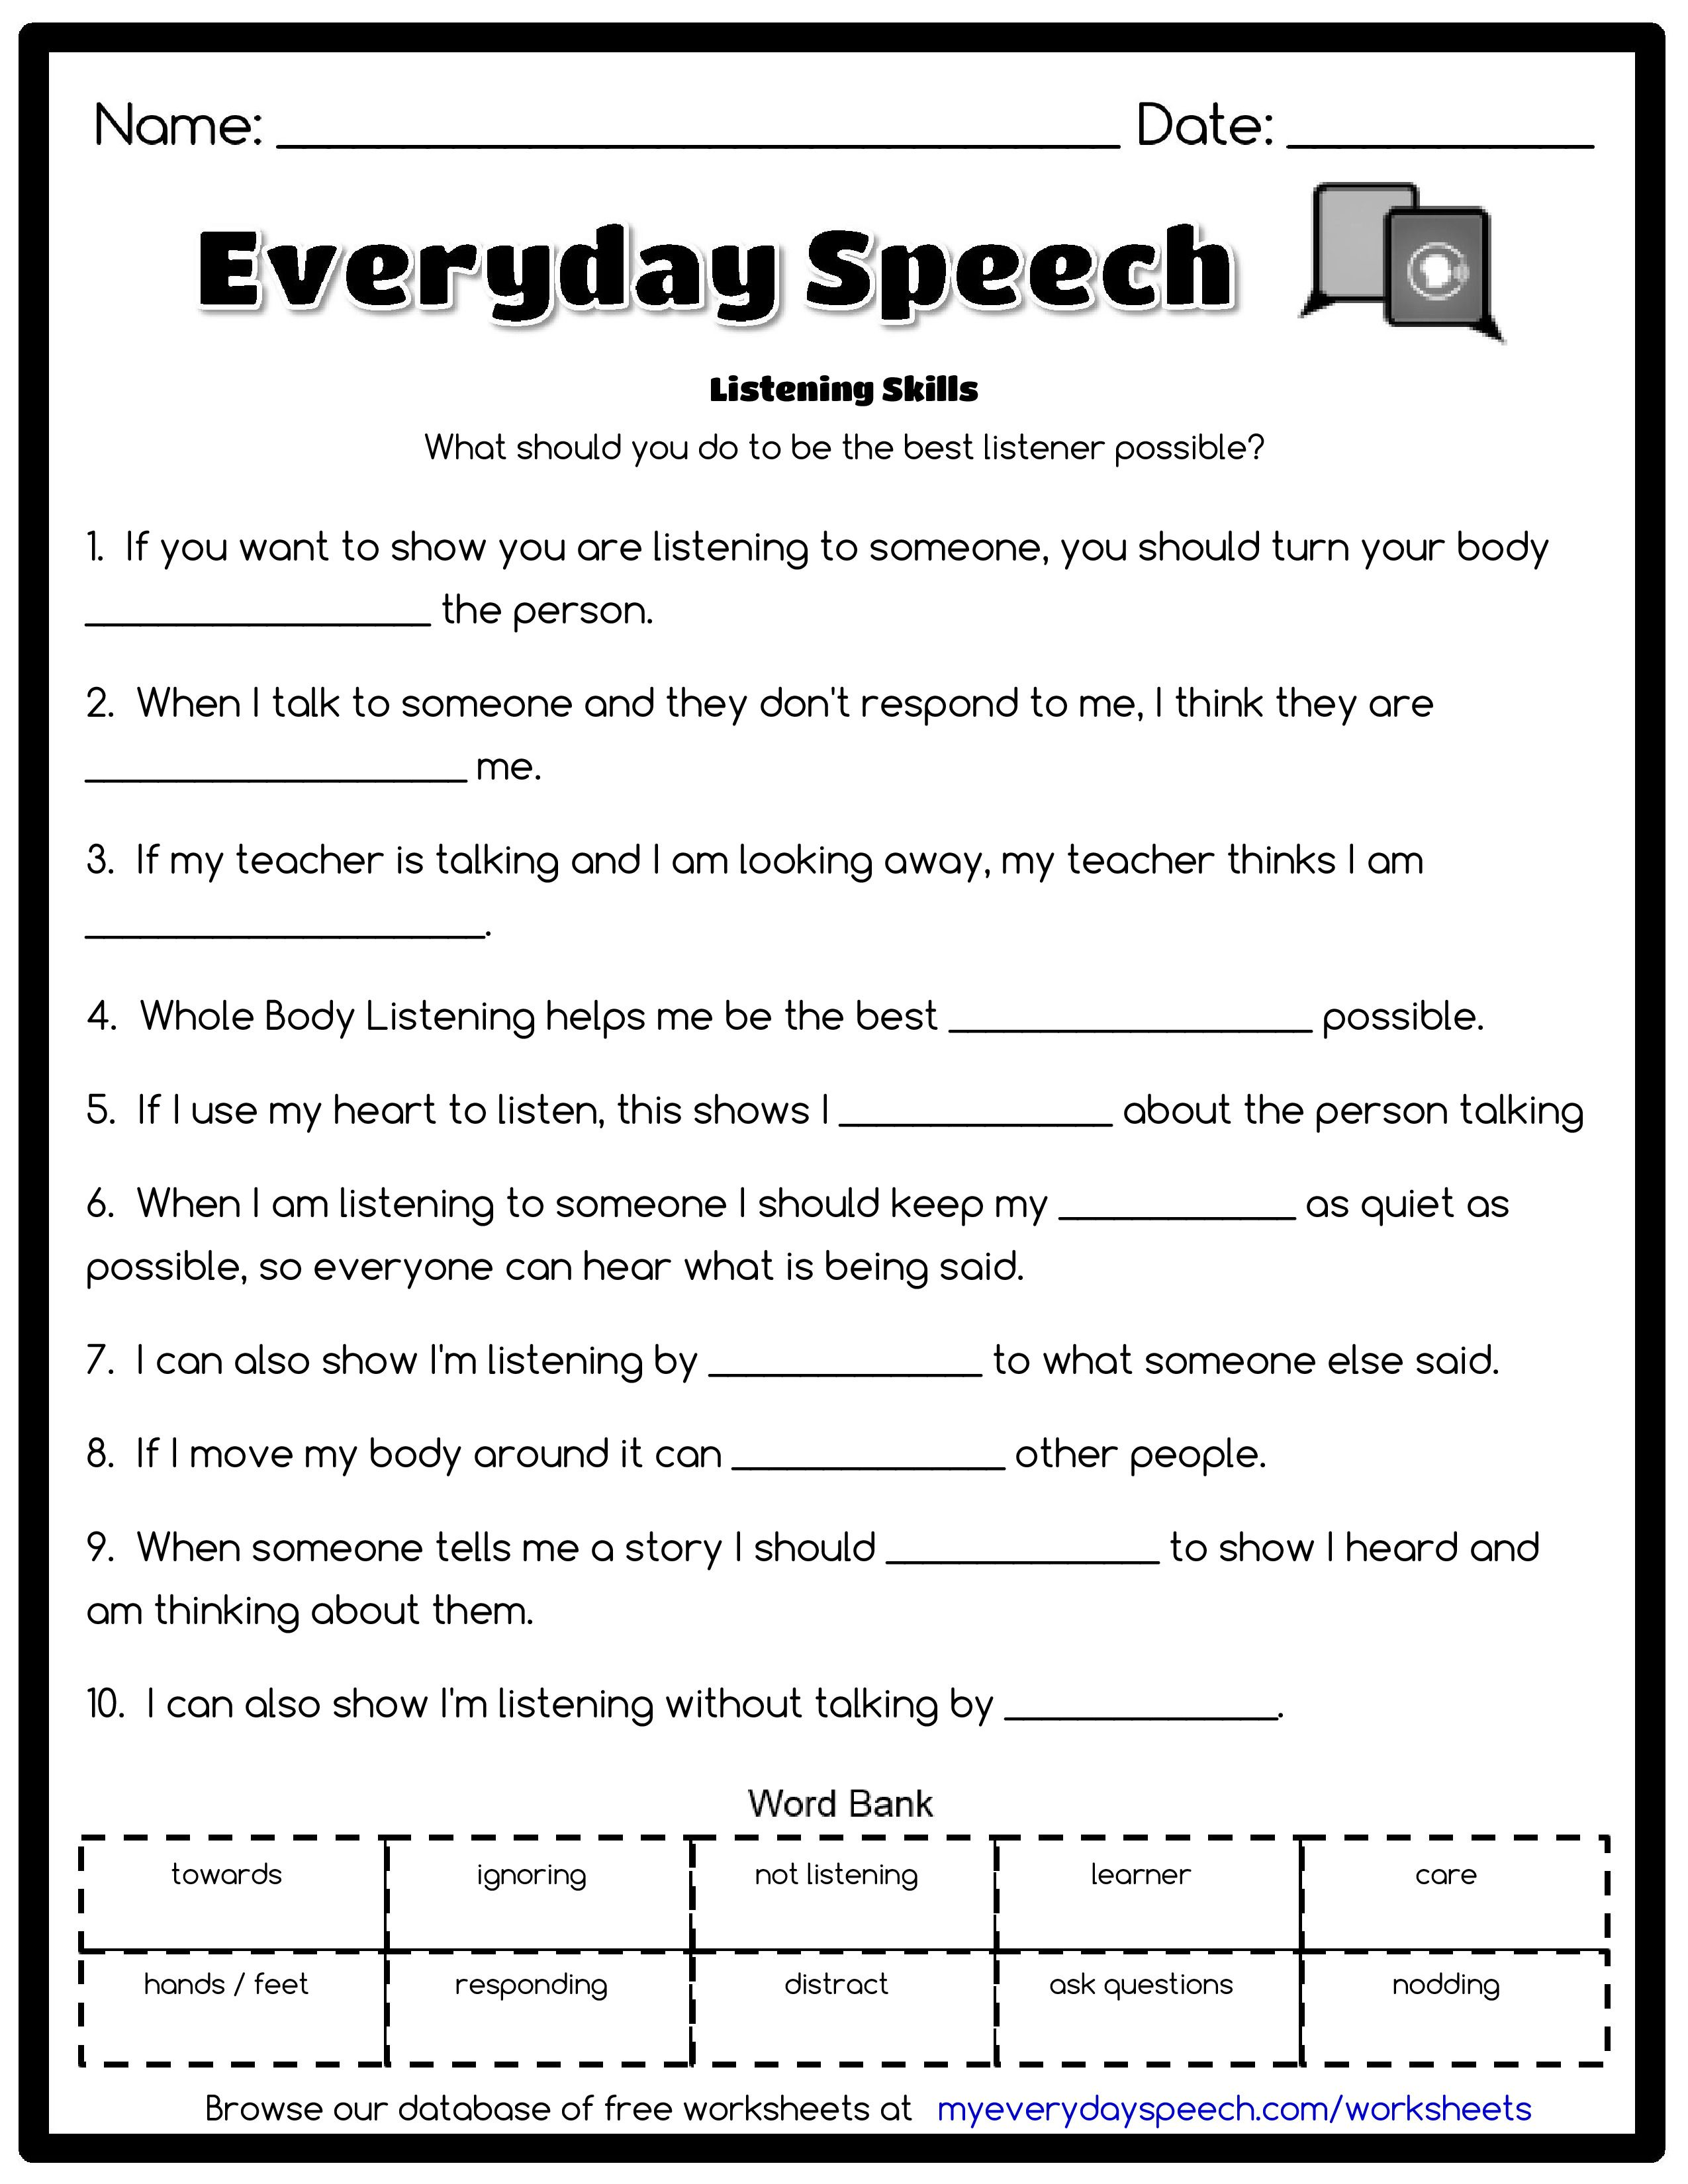 Check Out The Worksheet I Just Made Using Everyday Speech S Worksheet Creator L Listening Skills Worksheets Speech Therapy Materials Speech Therapy Worksheets